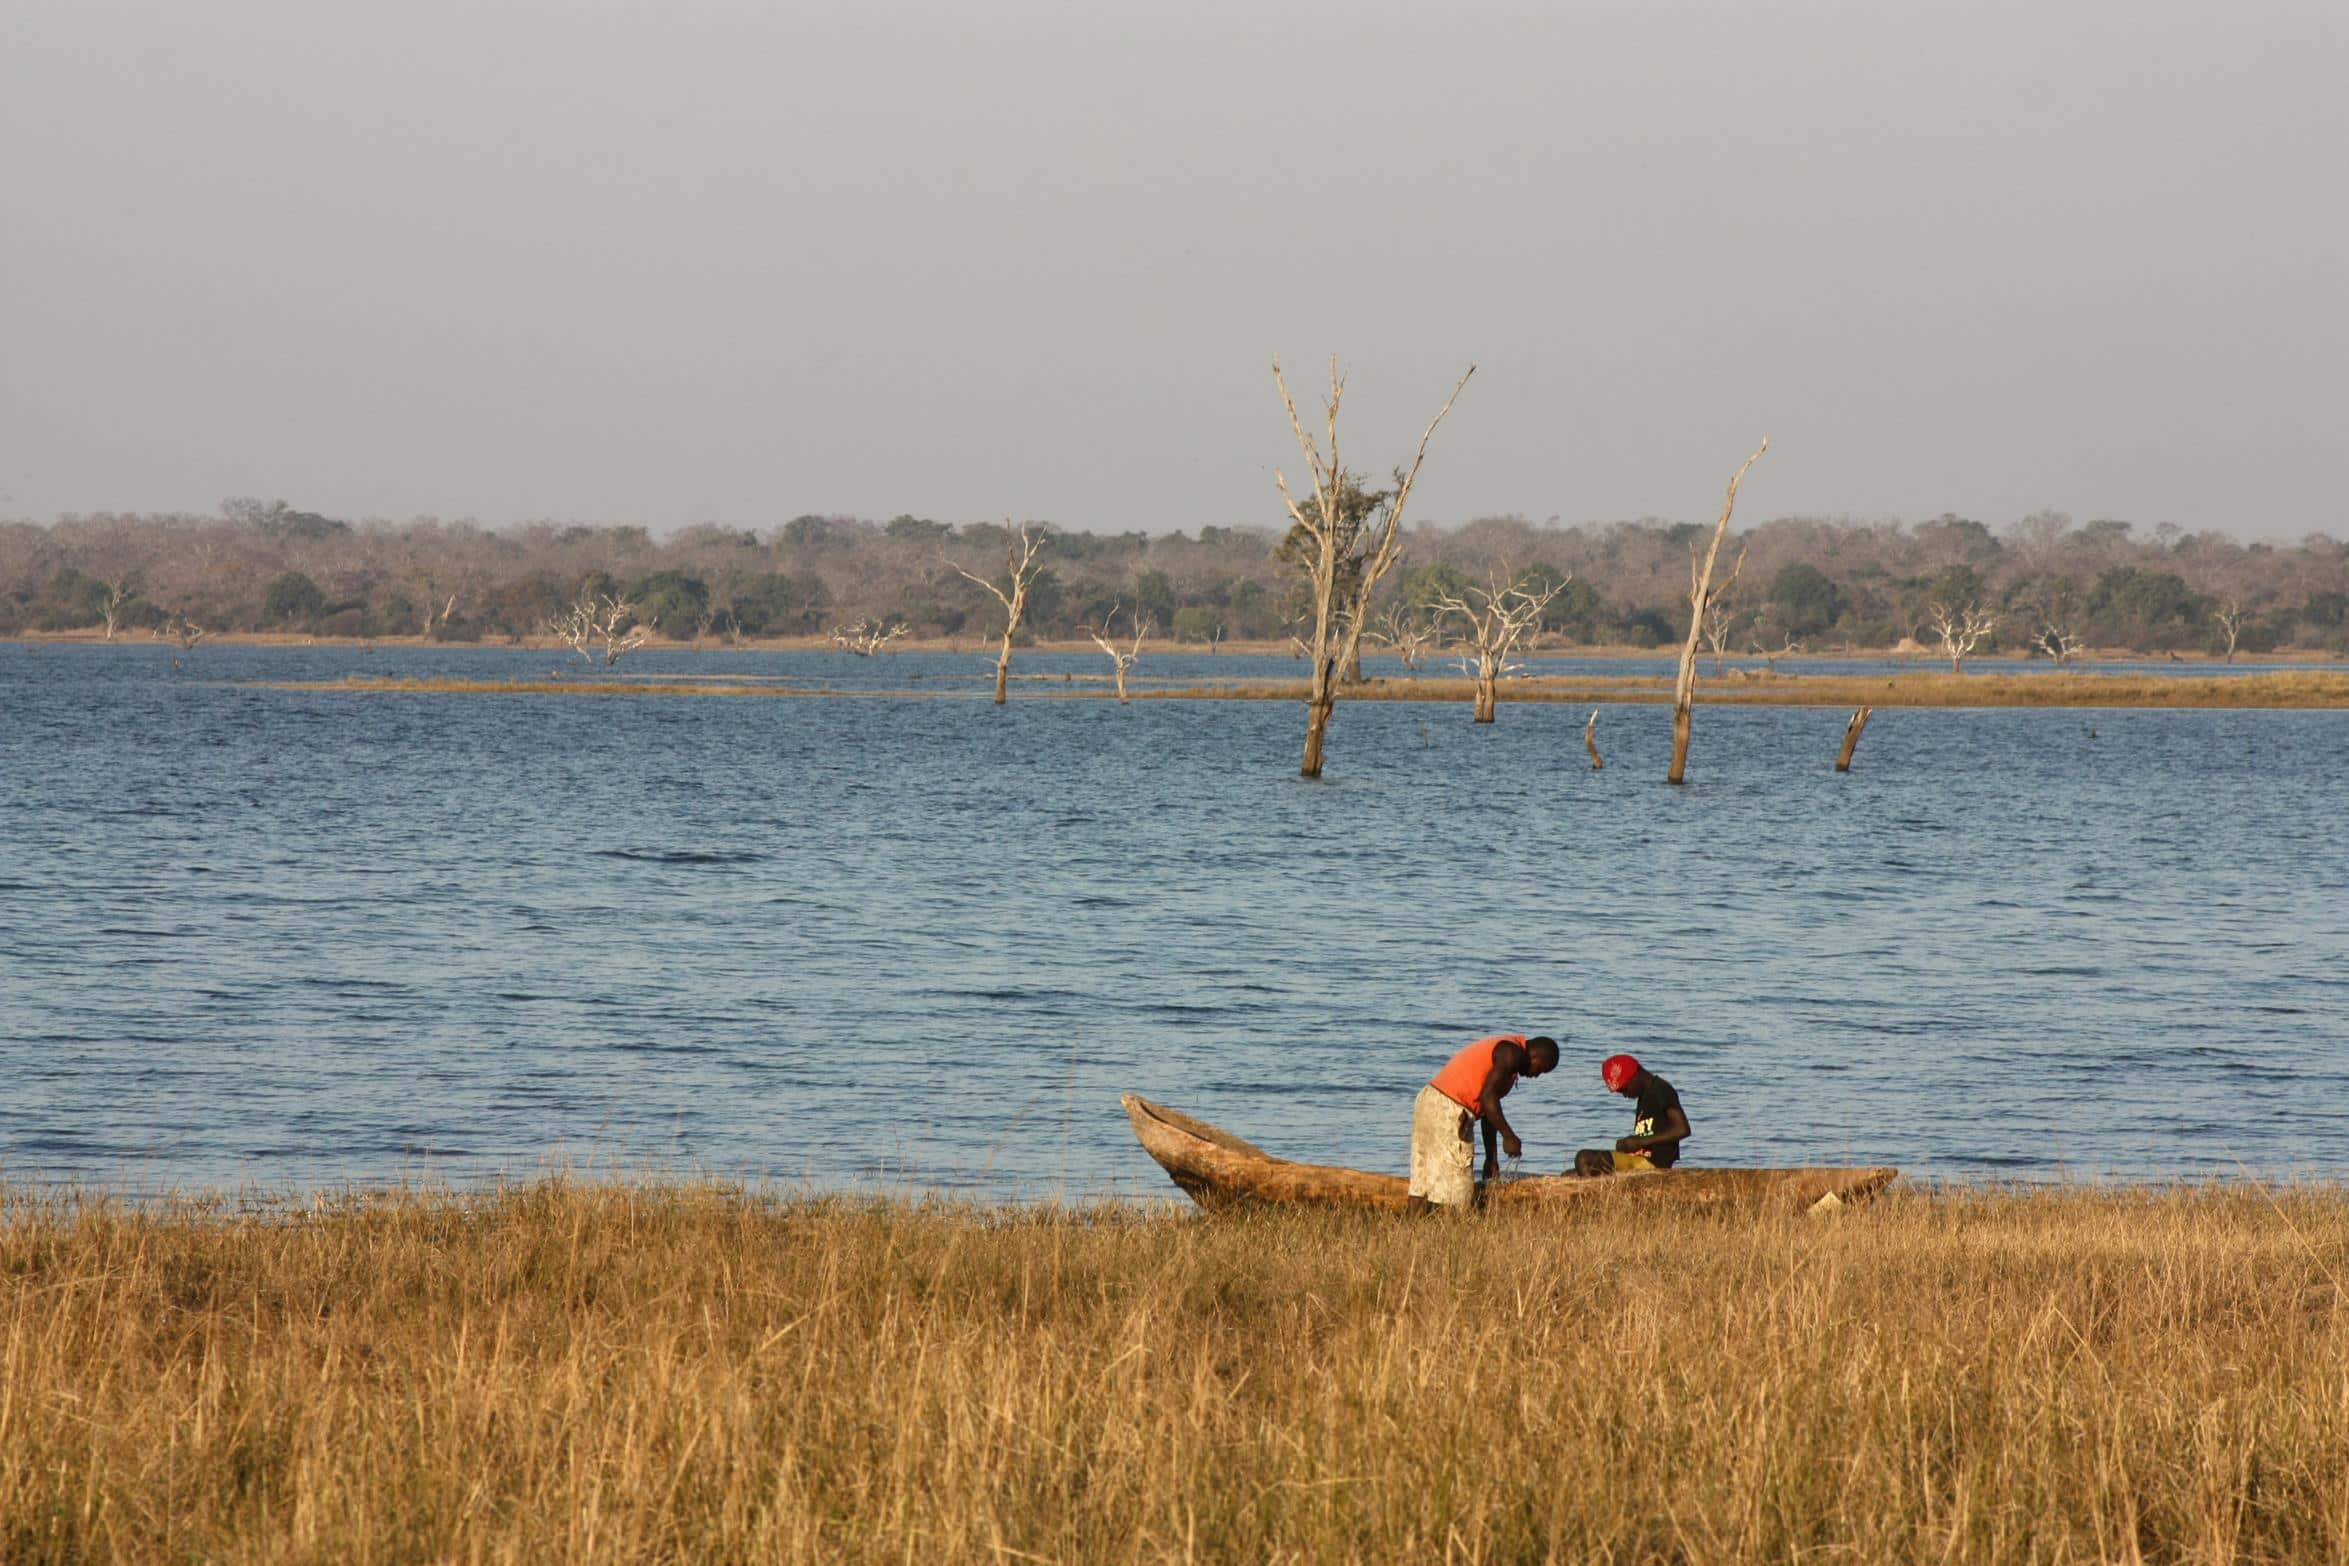 Fishermen on their mokoro on Itezi-Tezhi Dam. (Photo: Karin Theron)